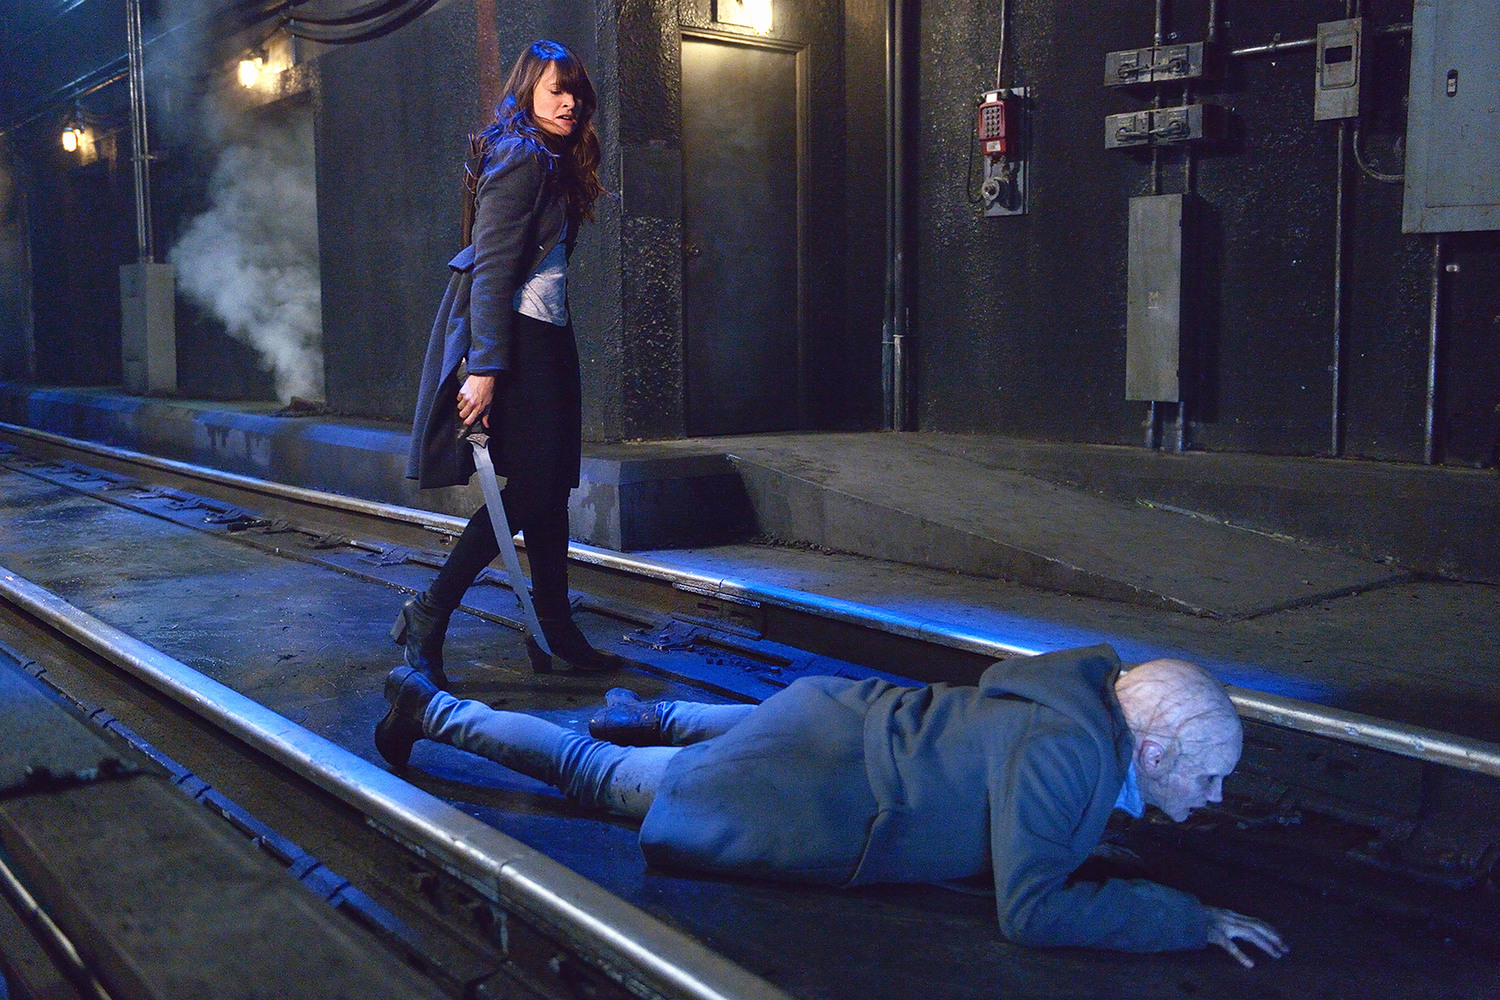 STRAIN 213 0834d hires1 - The Strain - Season 2 (Review)